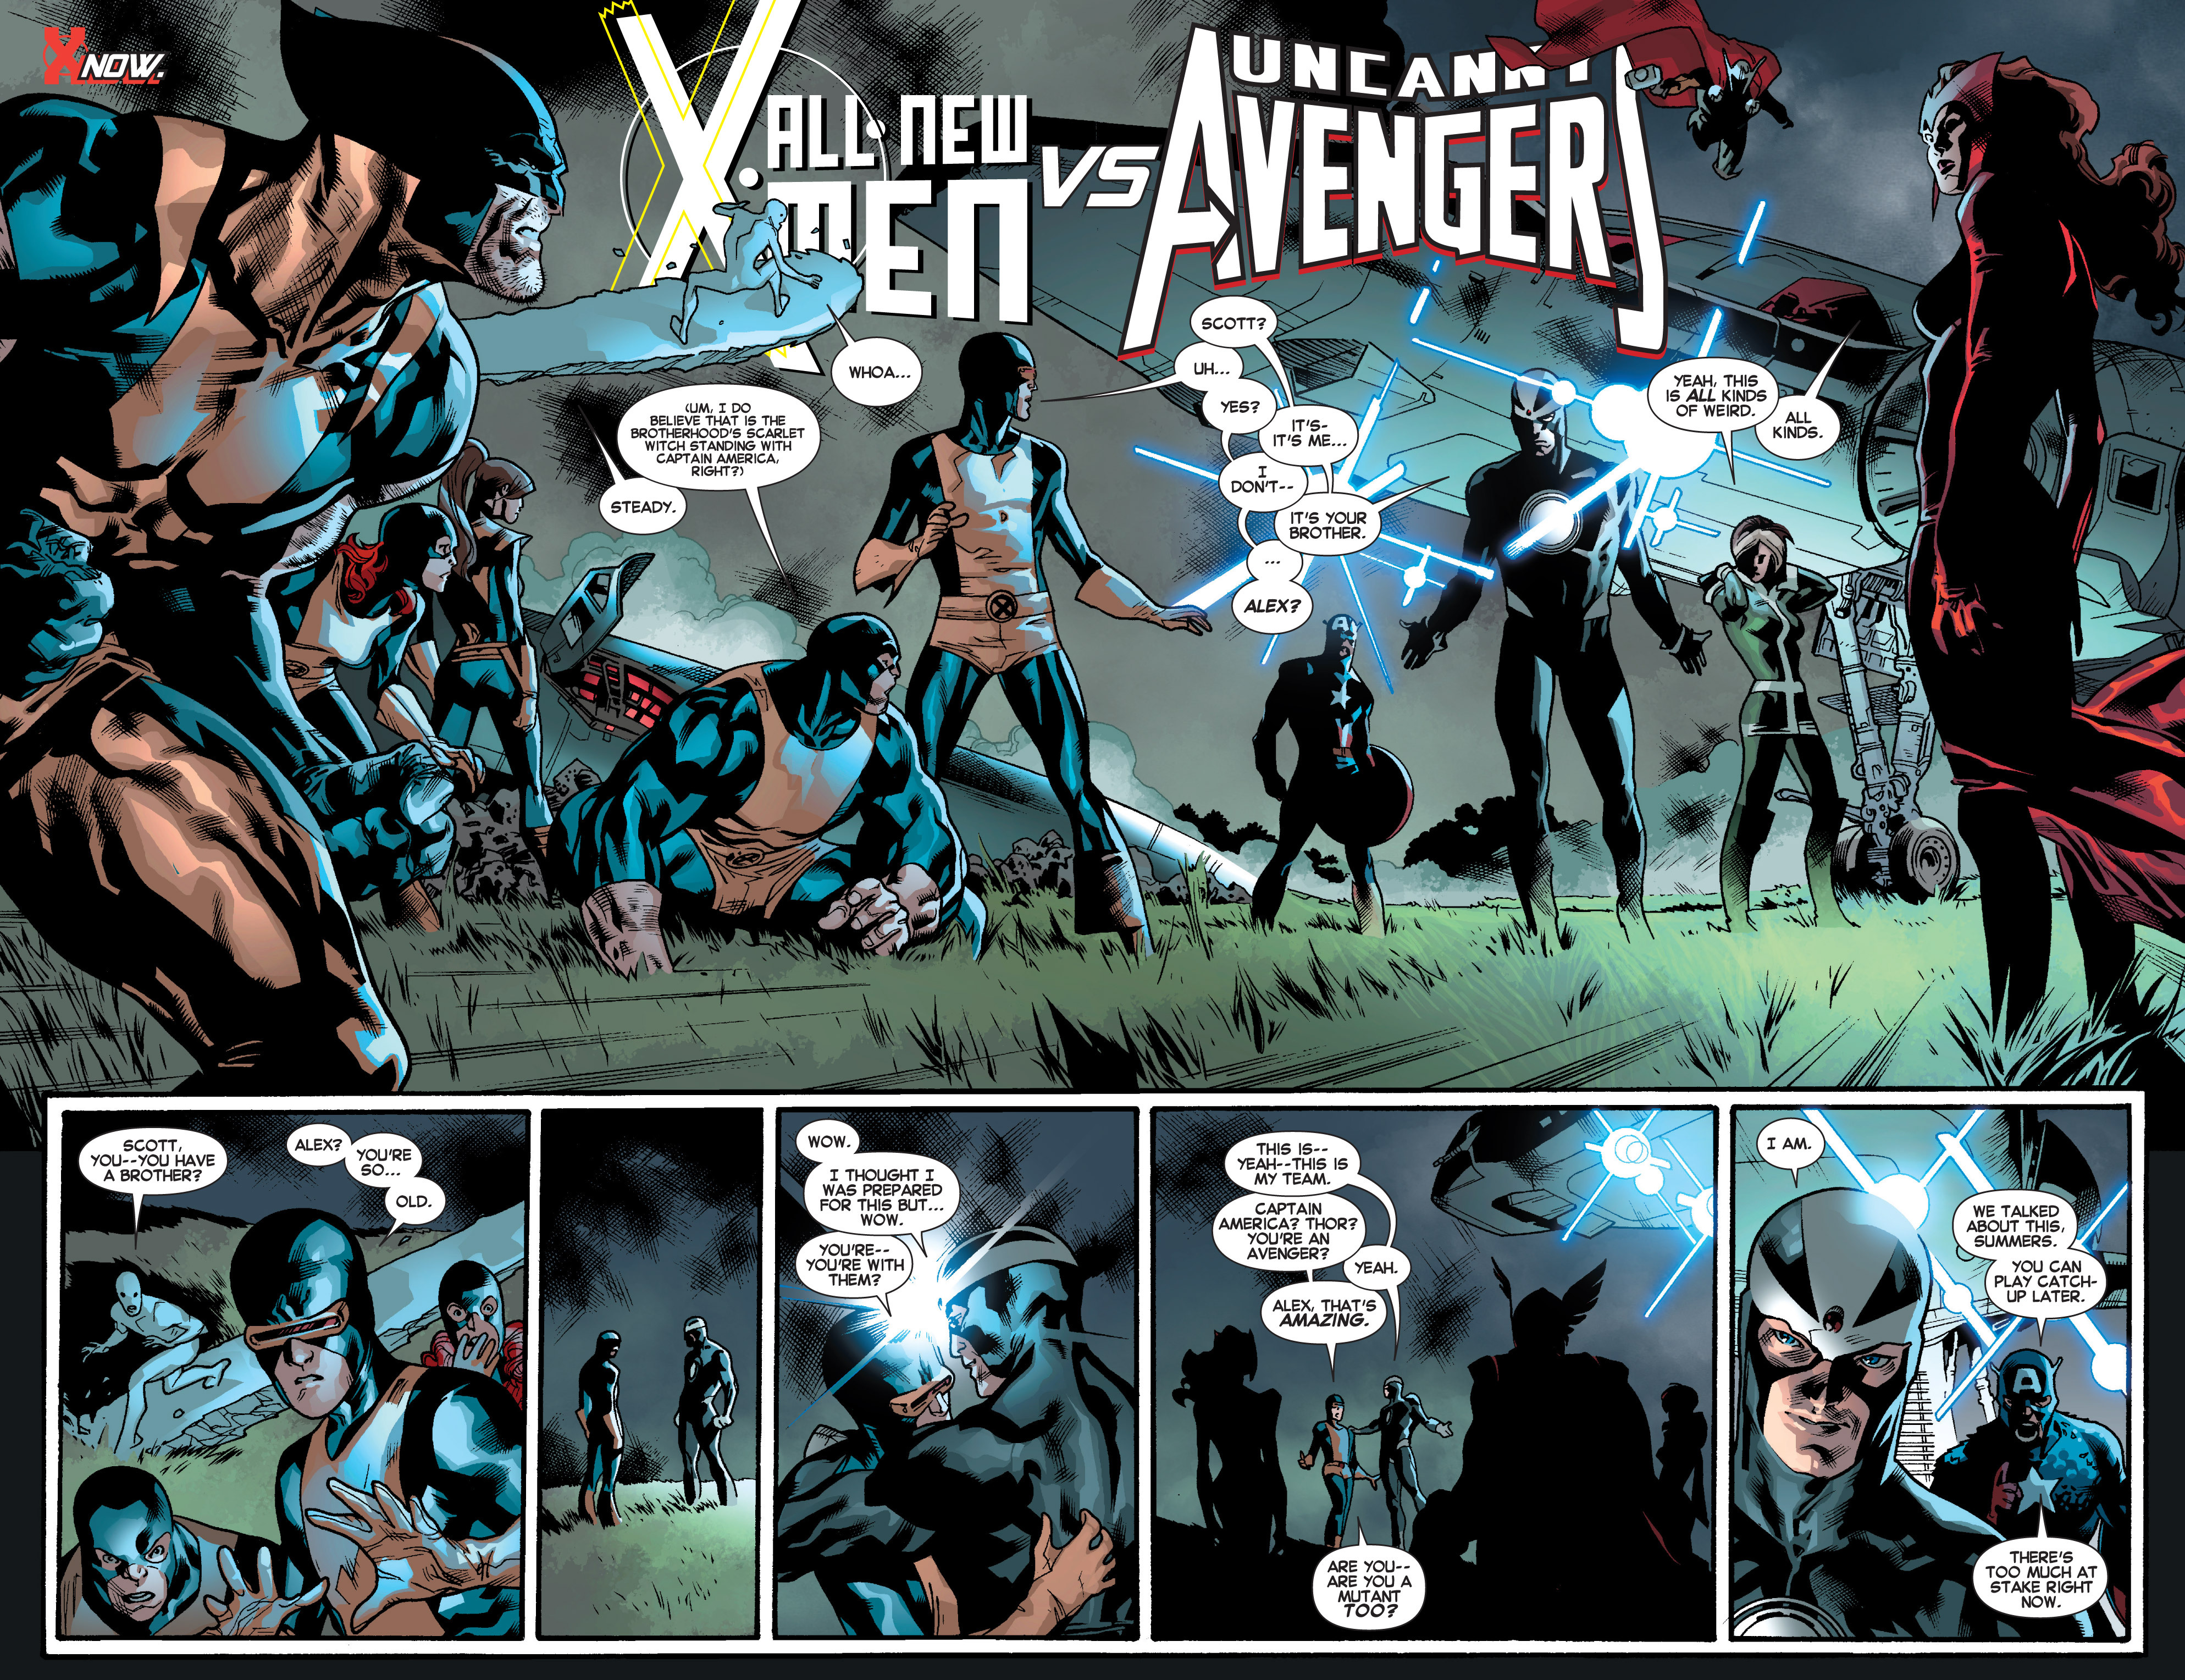 Read online All-New X-Men (2013) comic -  Issue # _Special - Out Of Their Depth - 29